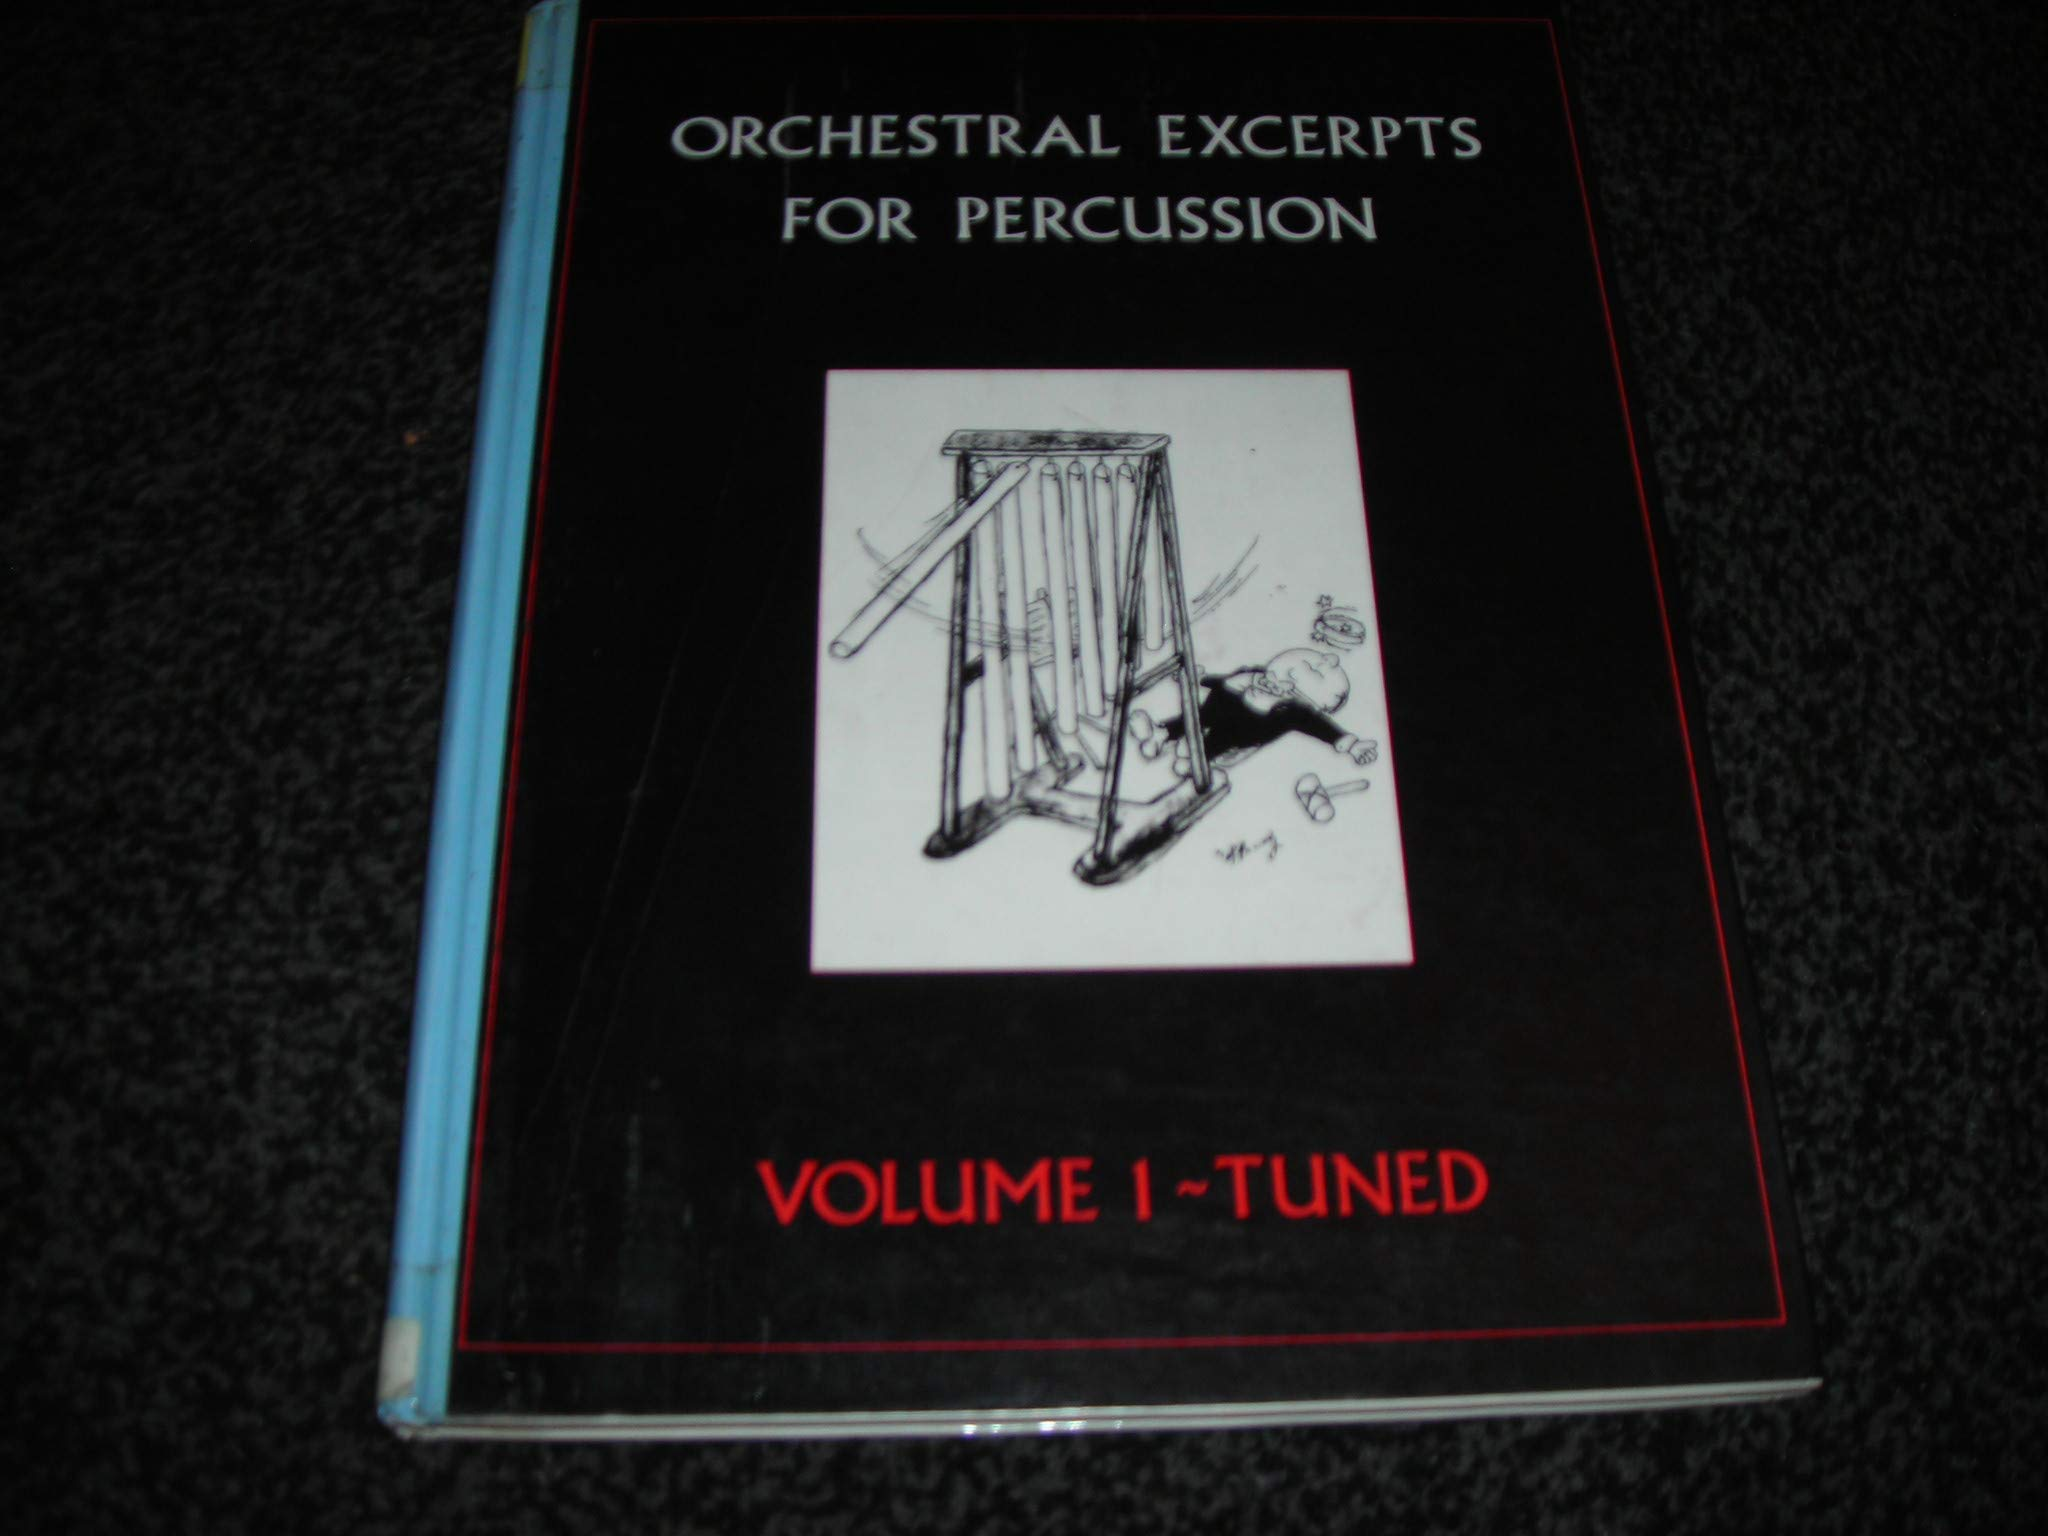 50a9e24326c2e Orchestral Excerpts for Percussion: Tuned v. 1: Kevin Hathway ...